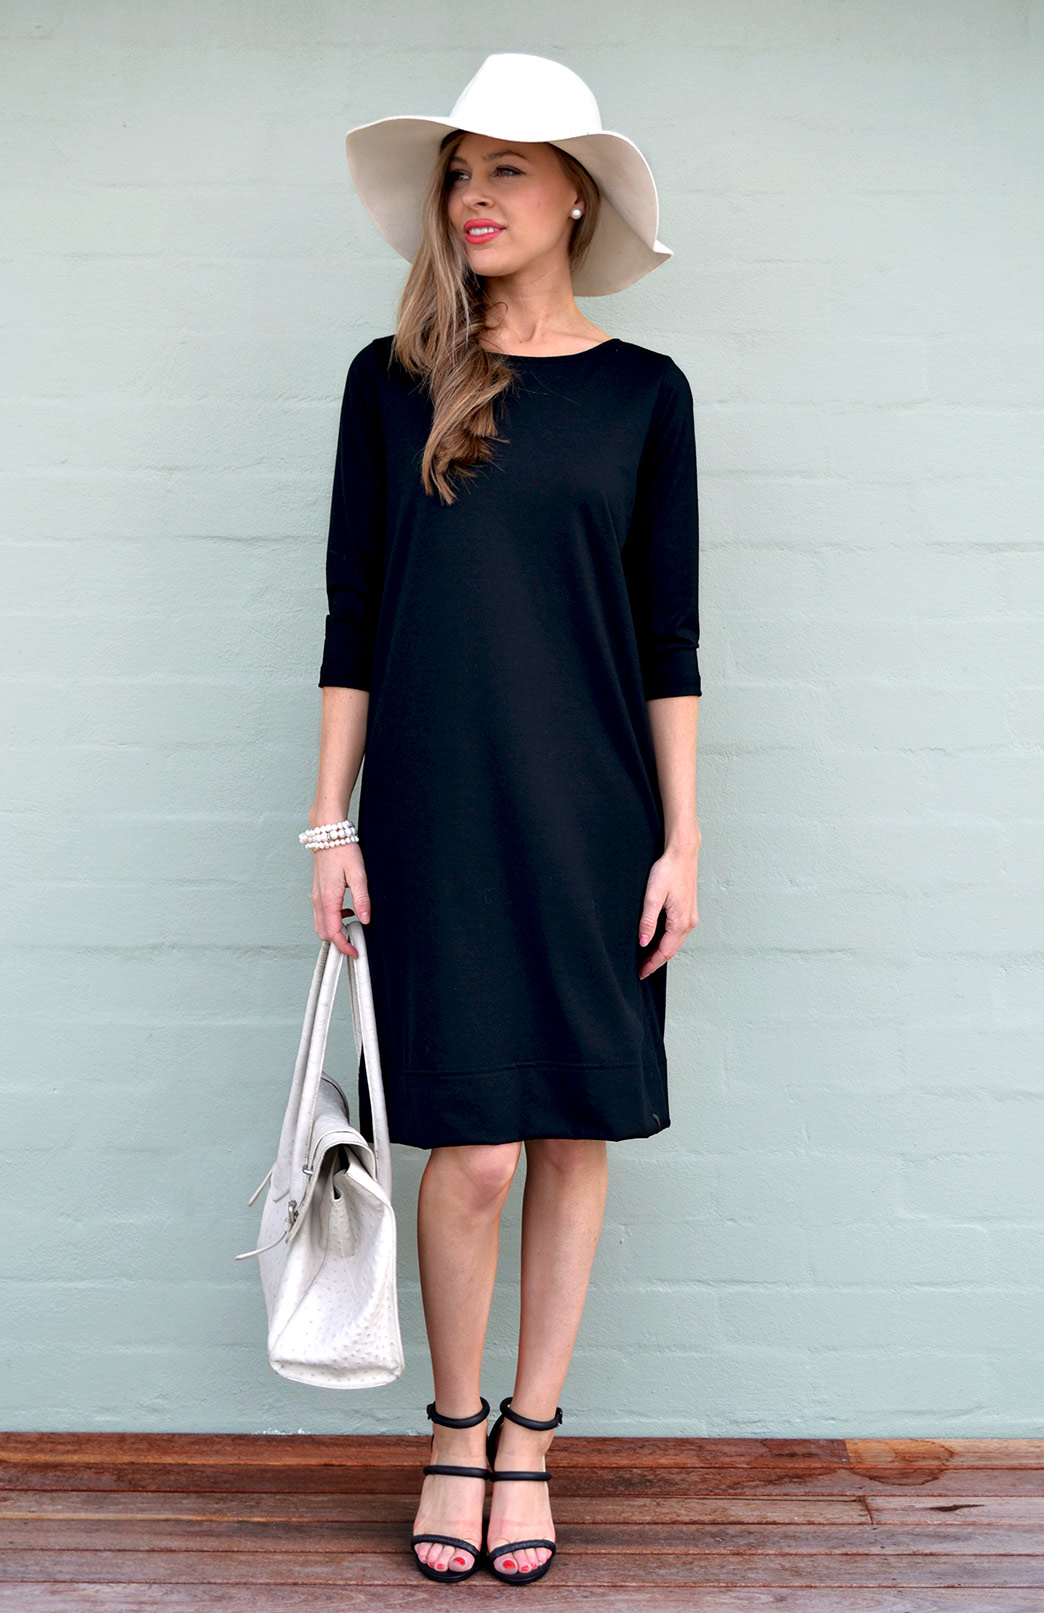 Audrey Shift Dress - Women's Black Merino Wool Classic Knee Length Dress - Smitten Merino Tasmania Australia